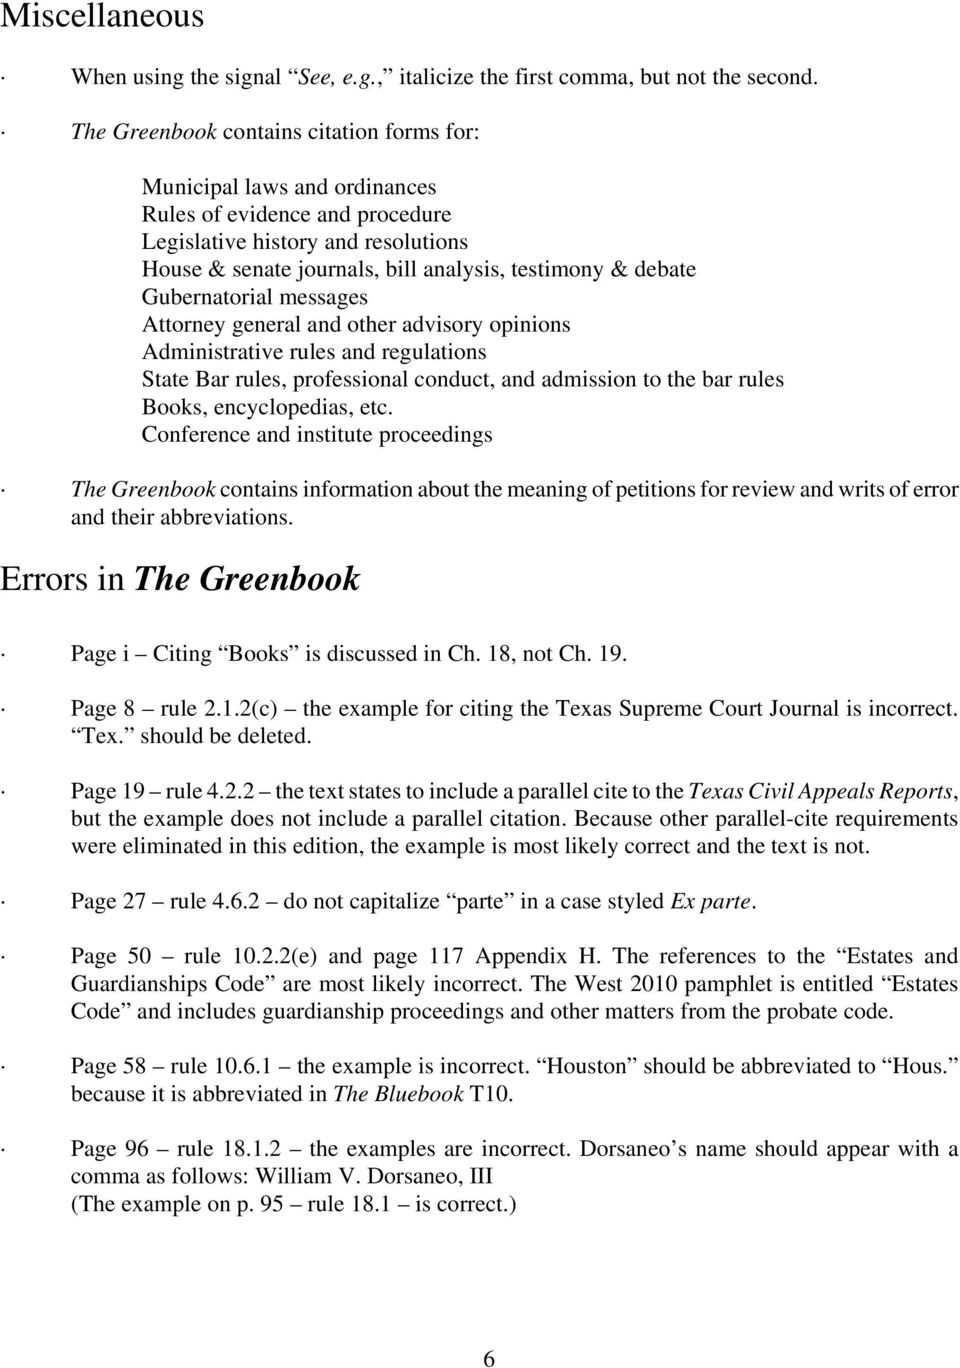 Overview of The Greenbook 12th Edition - PDF